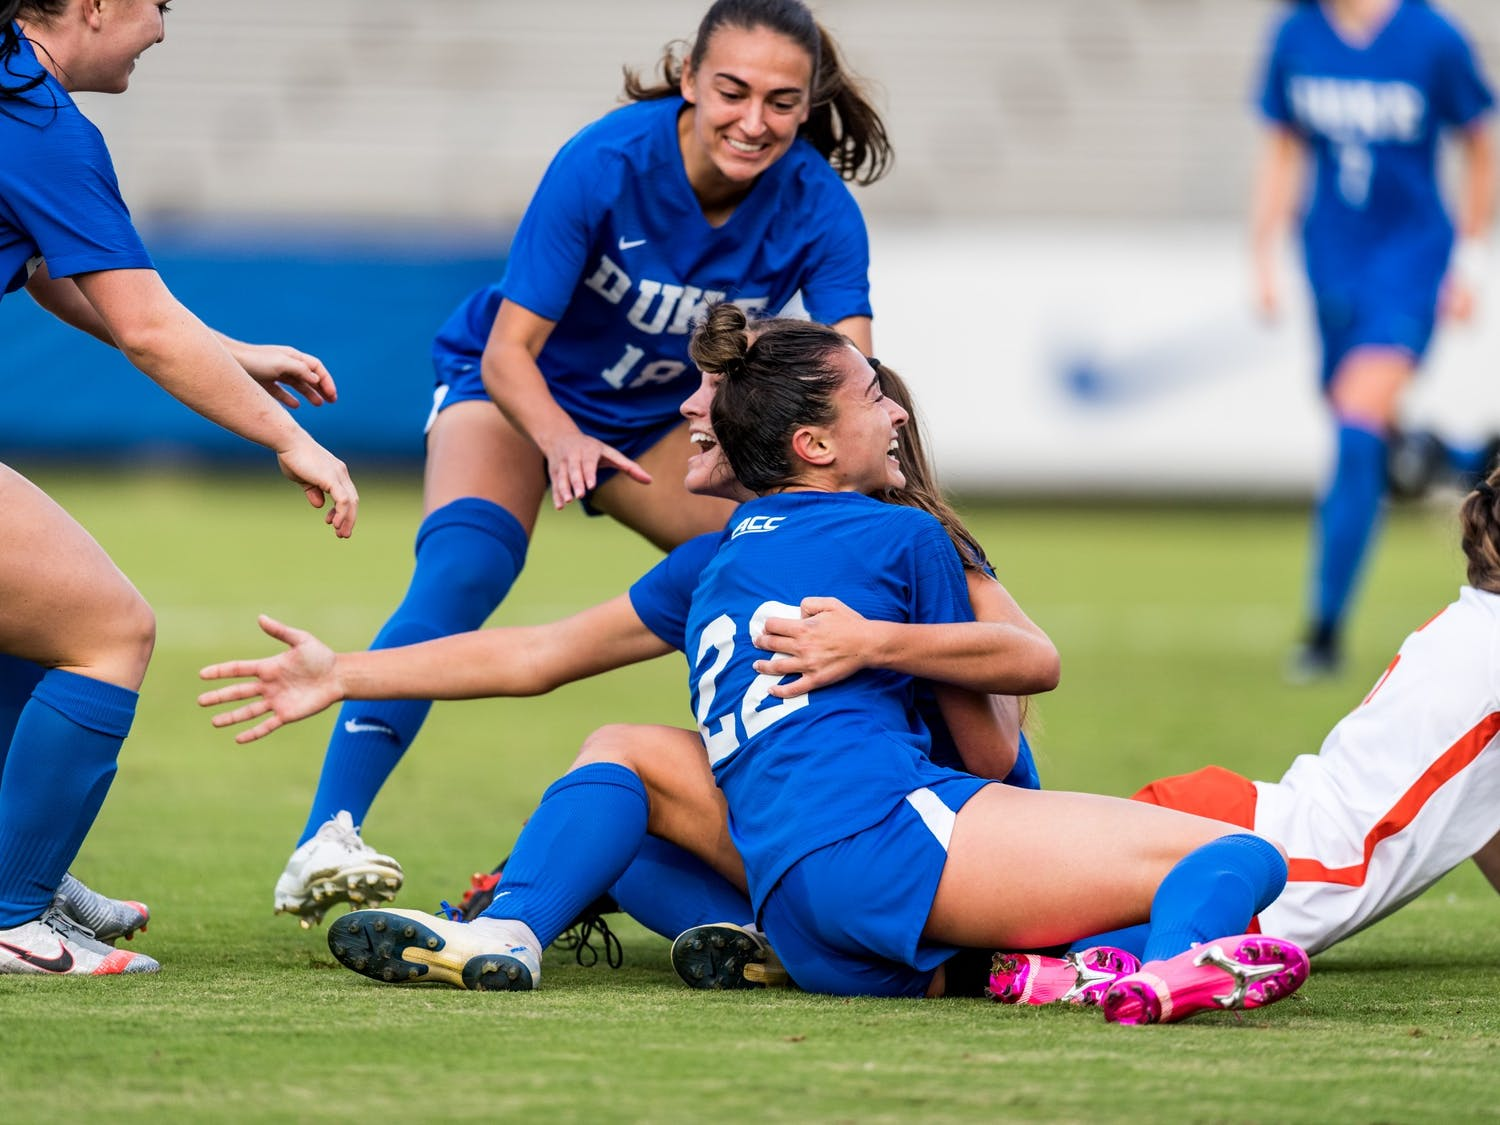 Olivia Migli's goal gave women's soccer a much-needed victory as it aims for any type of home-field advantage in the ACC tournament.